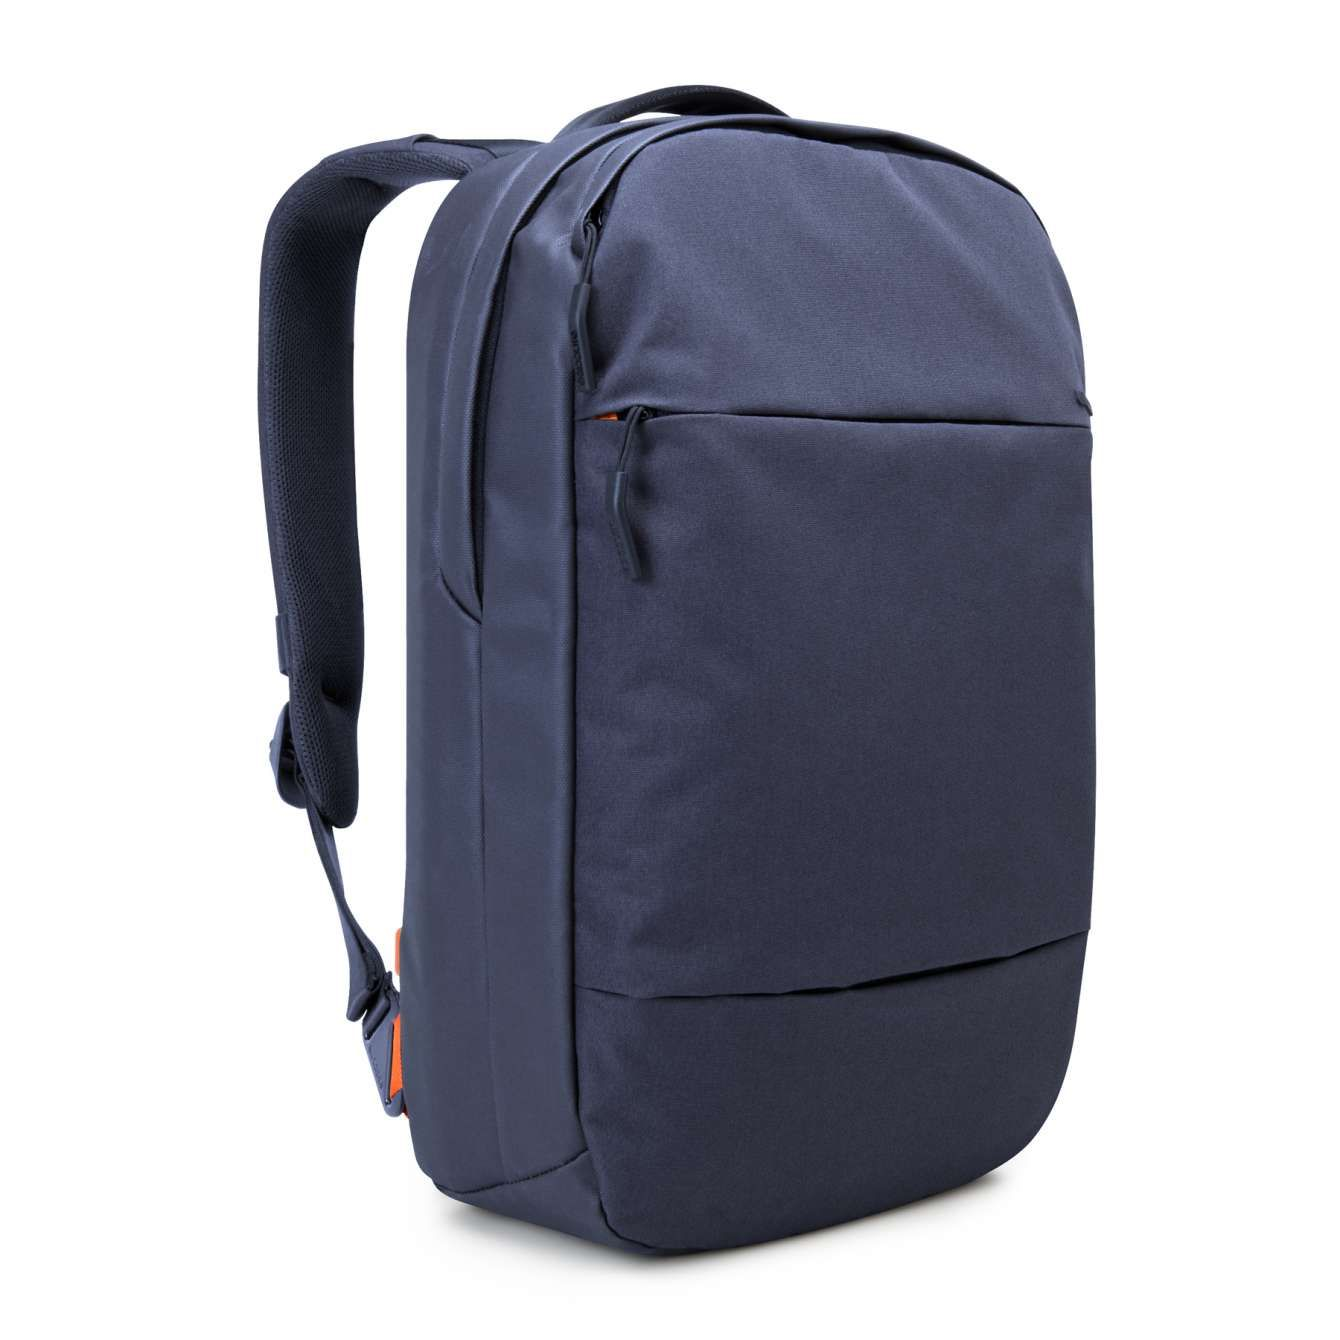 City Compact Backpack for 15